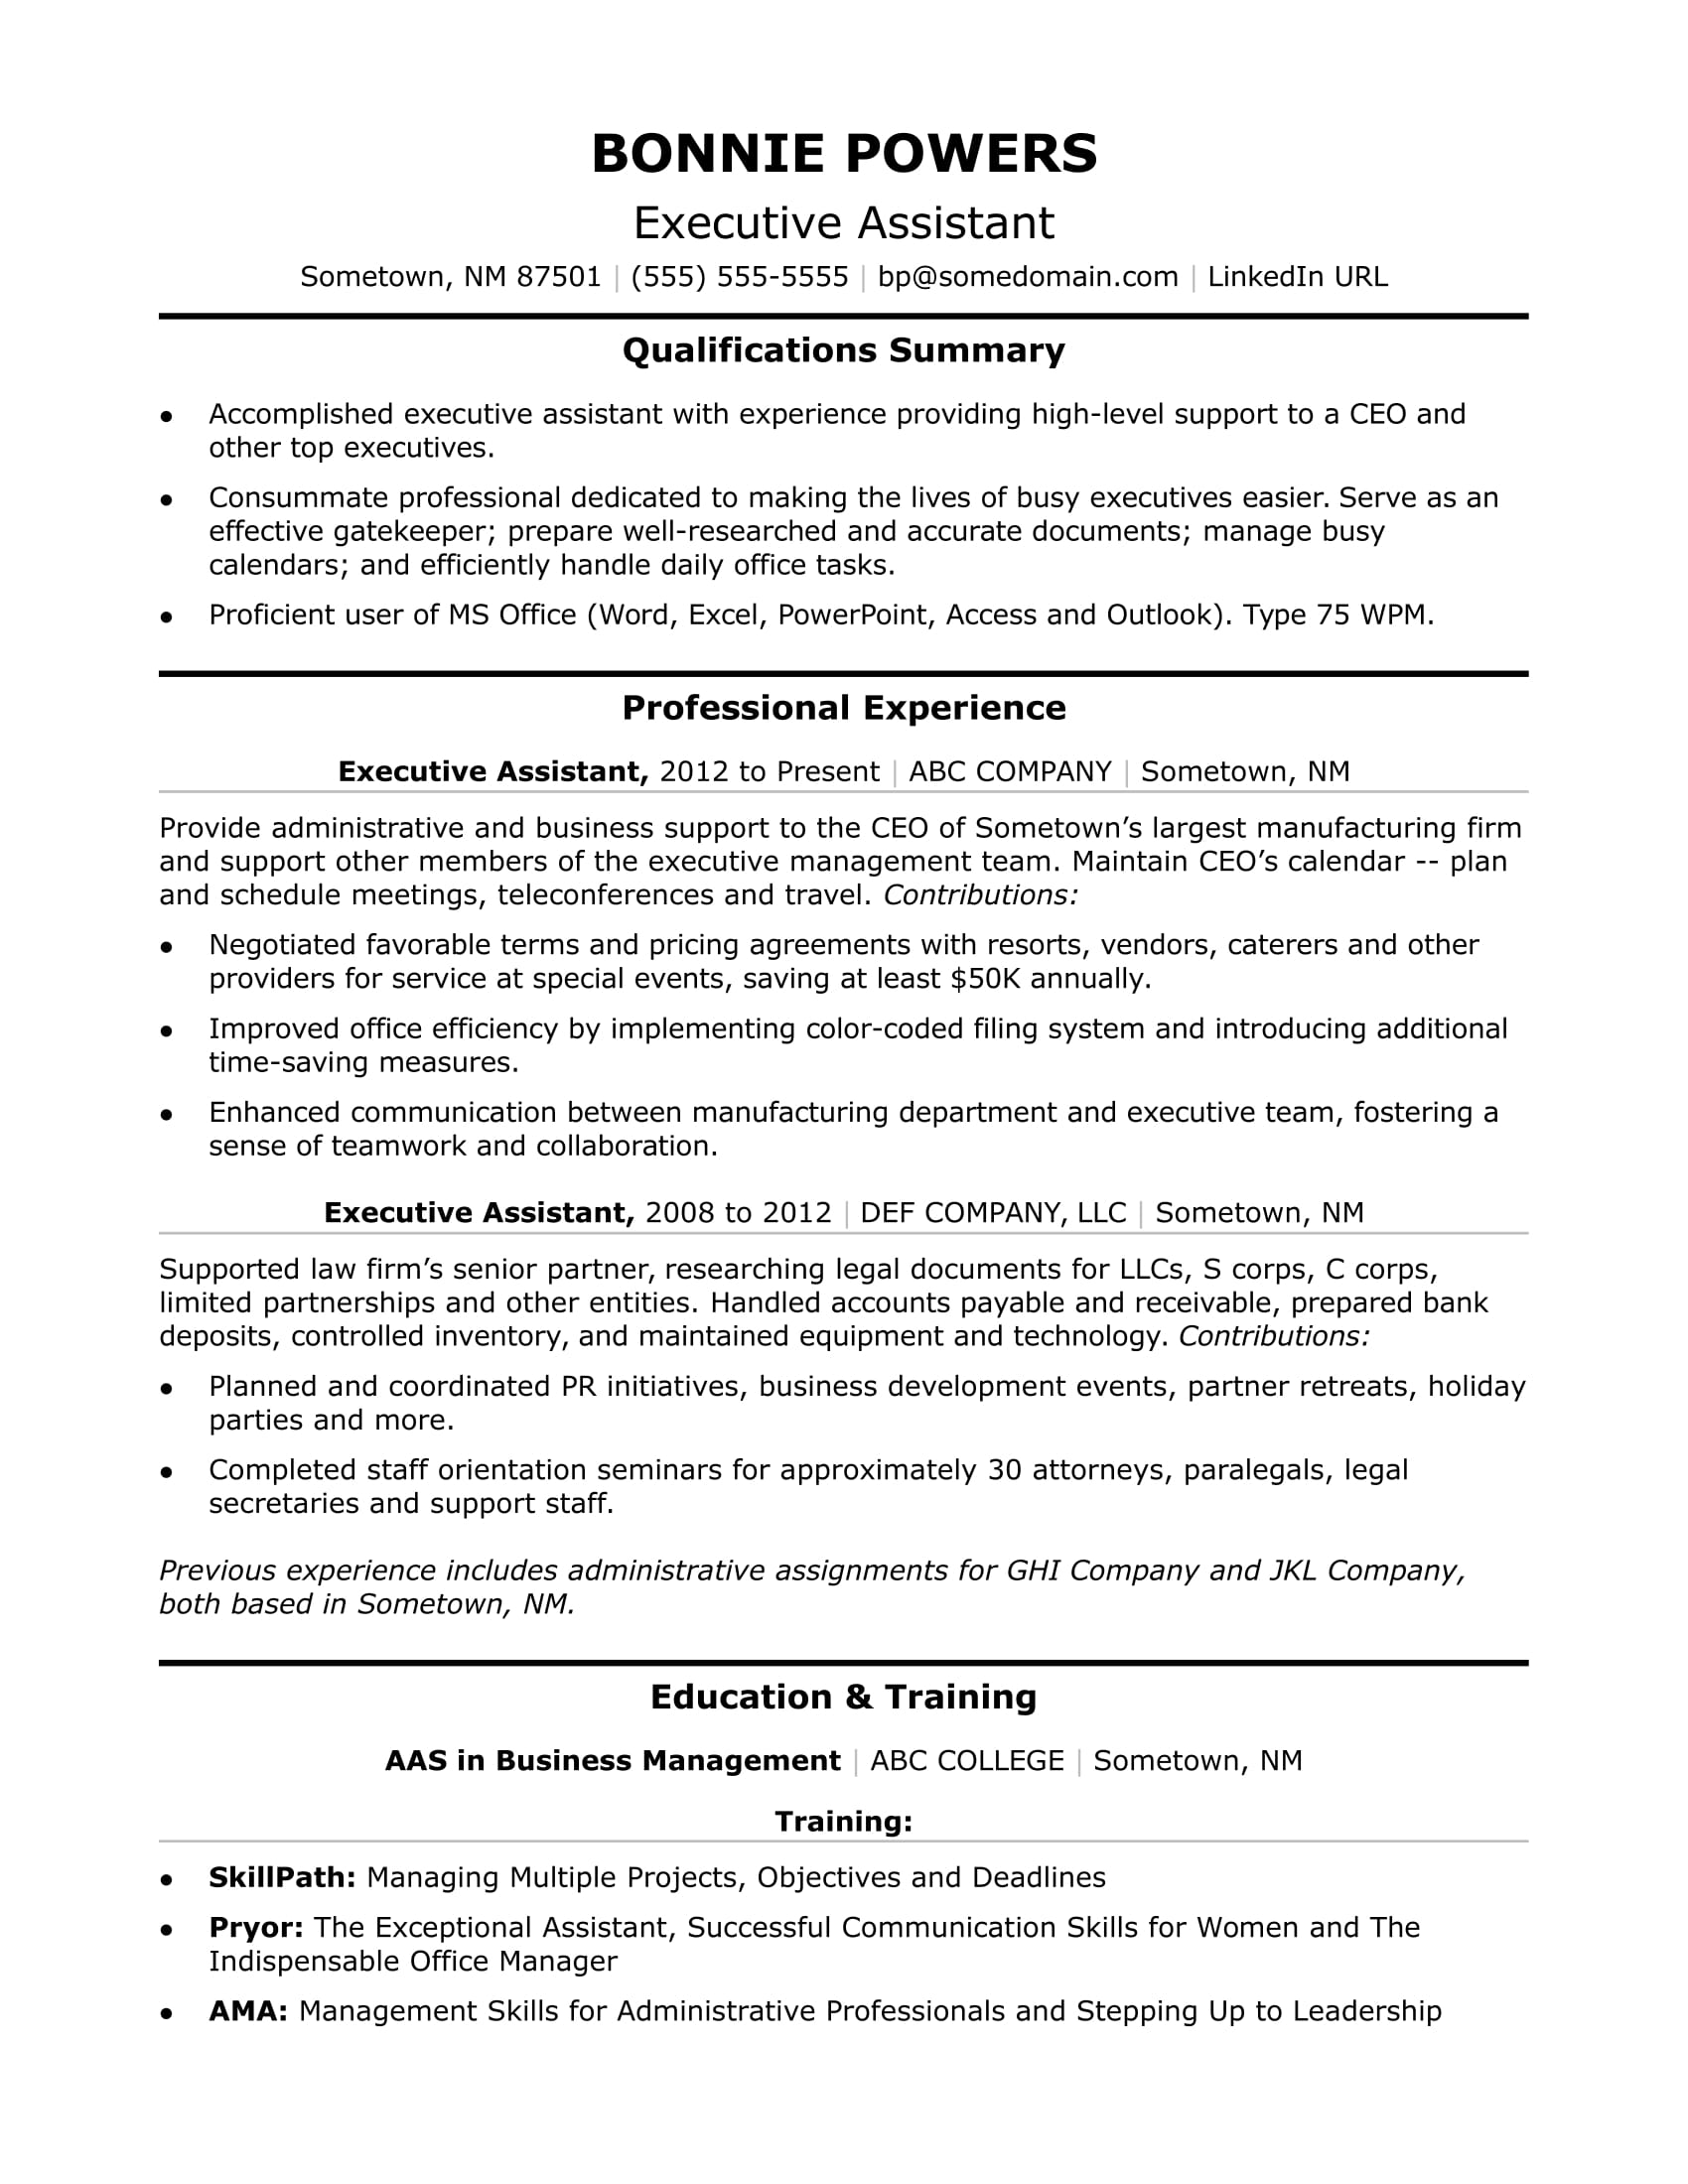 Executive Administrative Assistant Resume Sample  Admin Assistant Resume